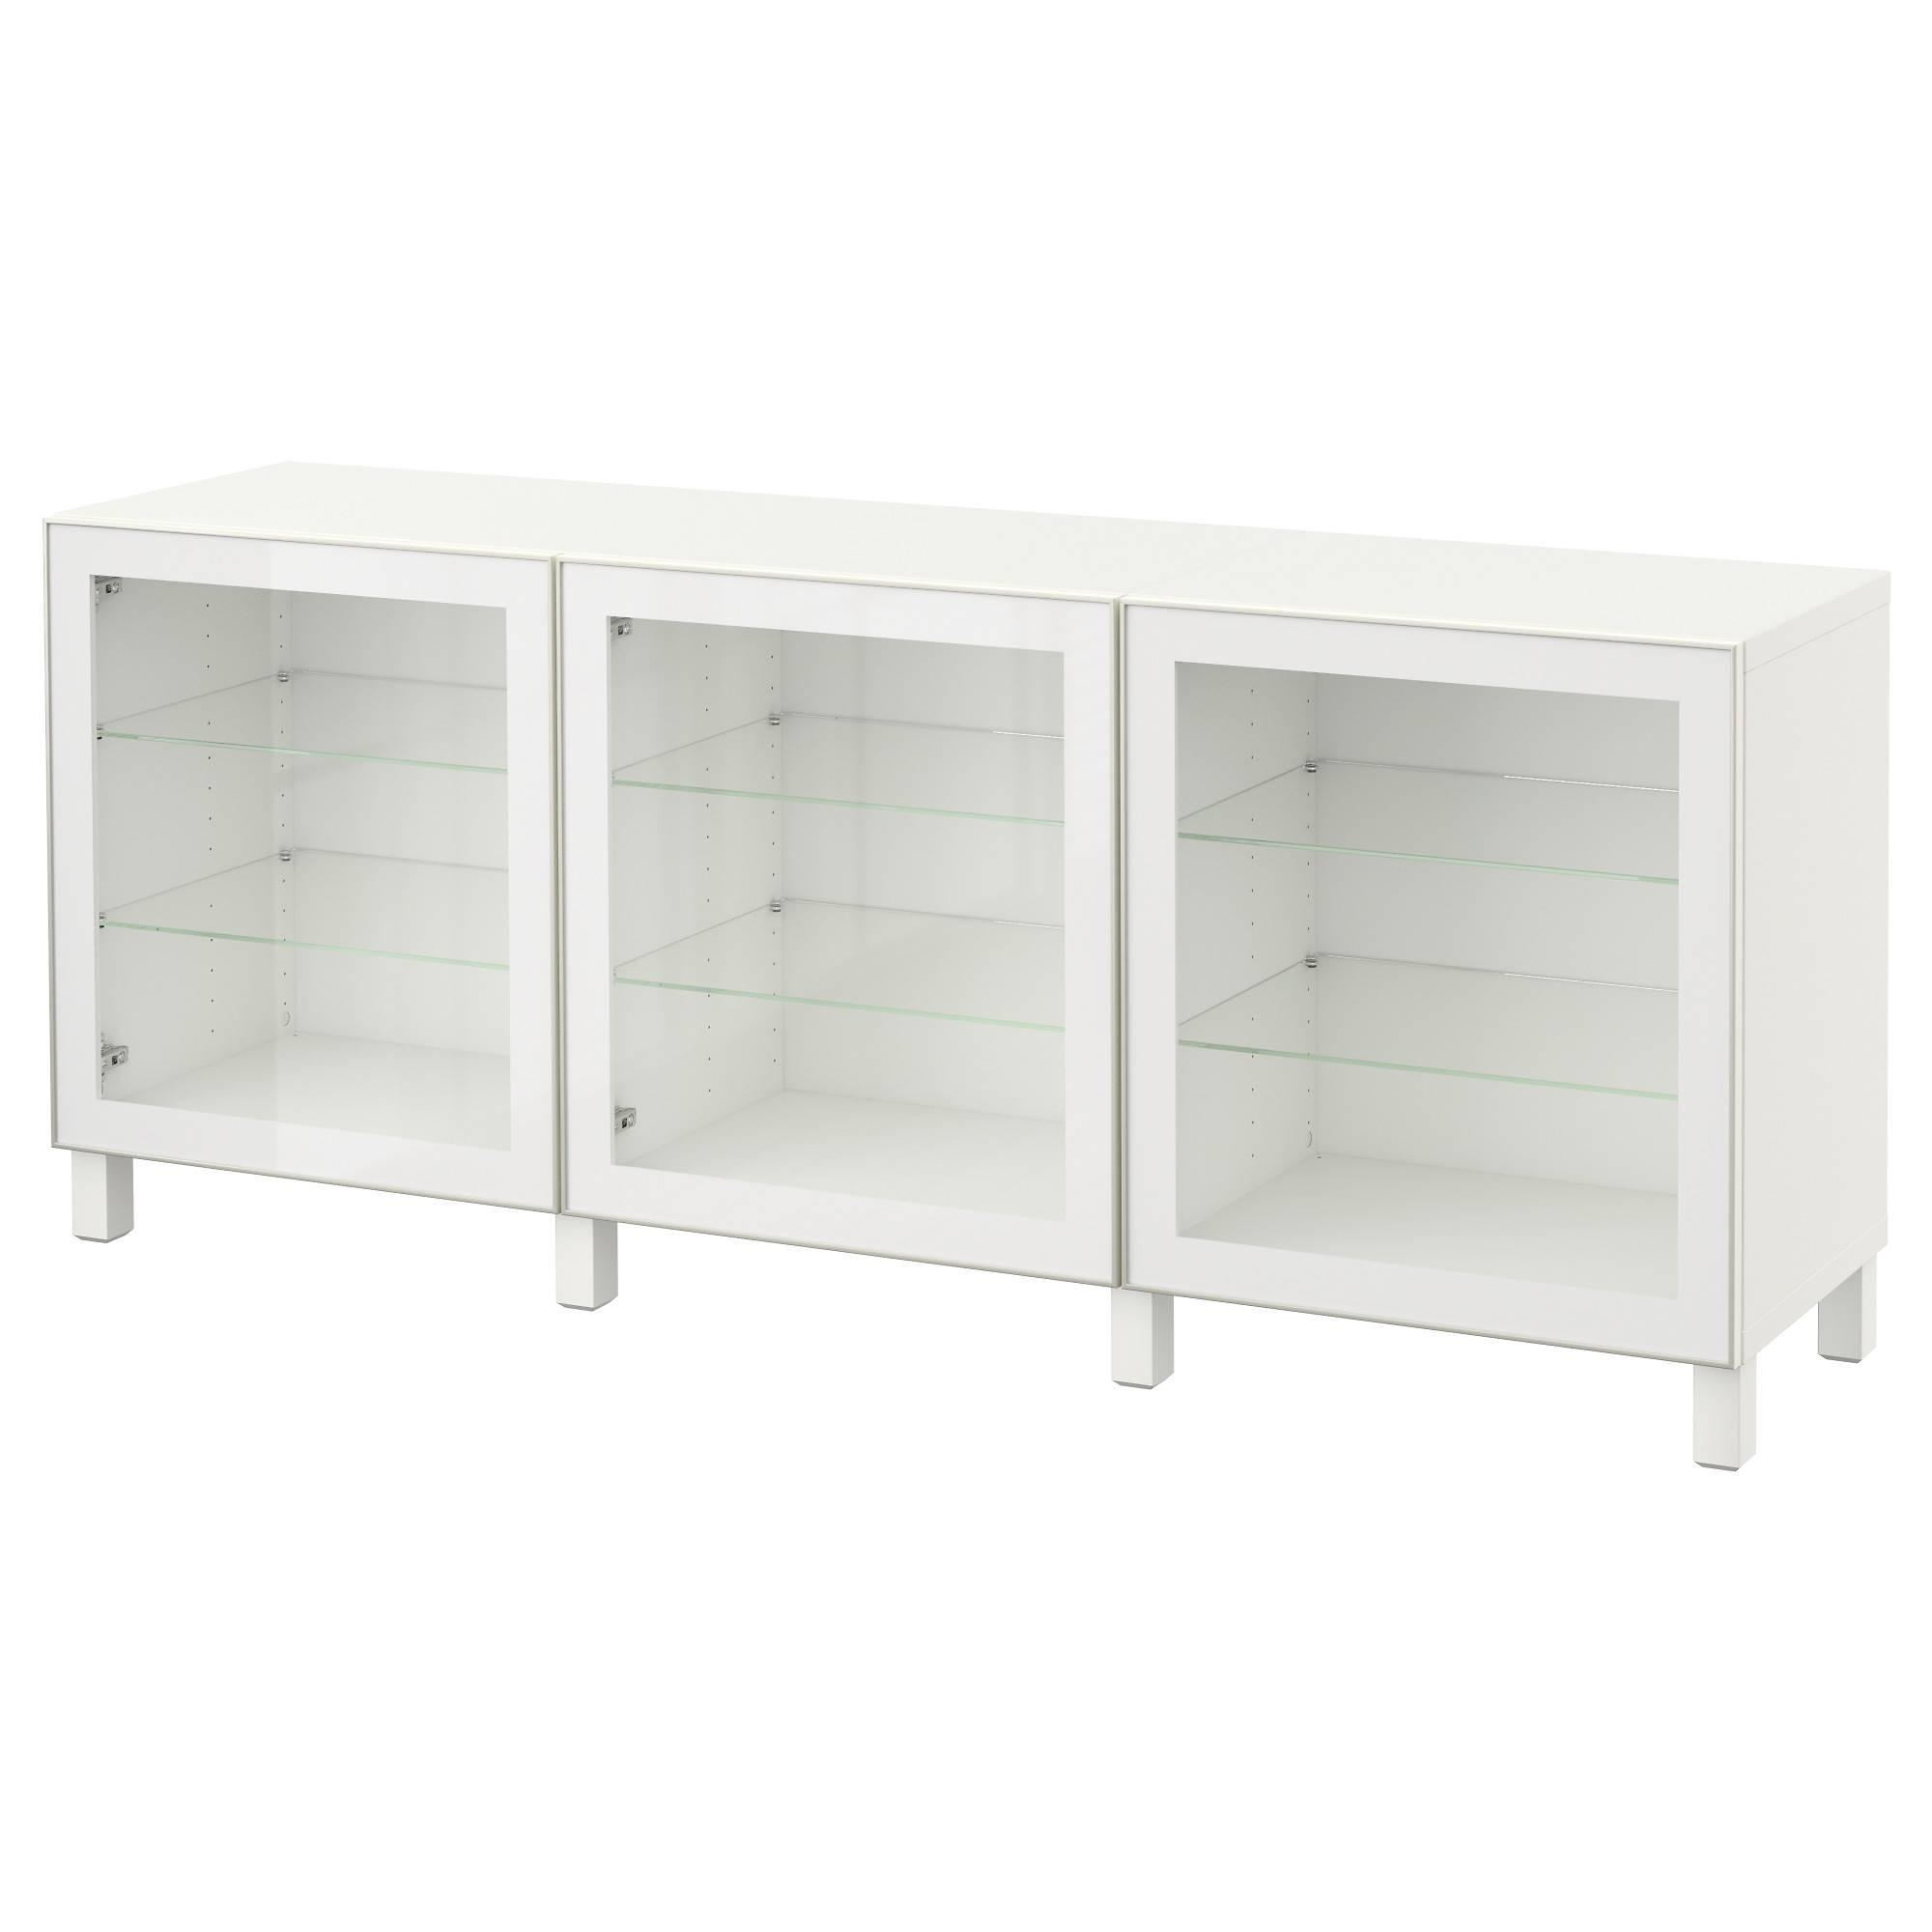 15 best of white gloss ikea sideboards ForWhite Gloss Sideboards At Ikea